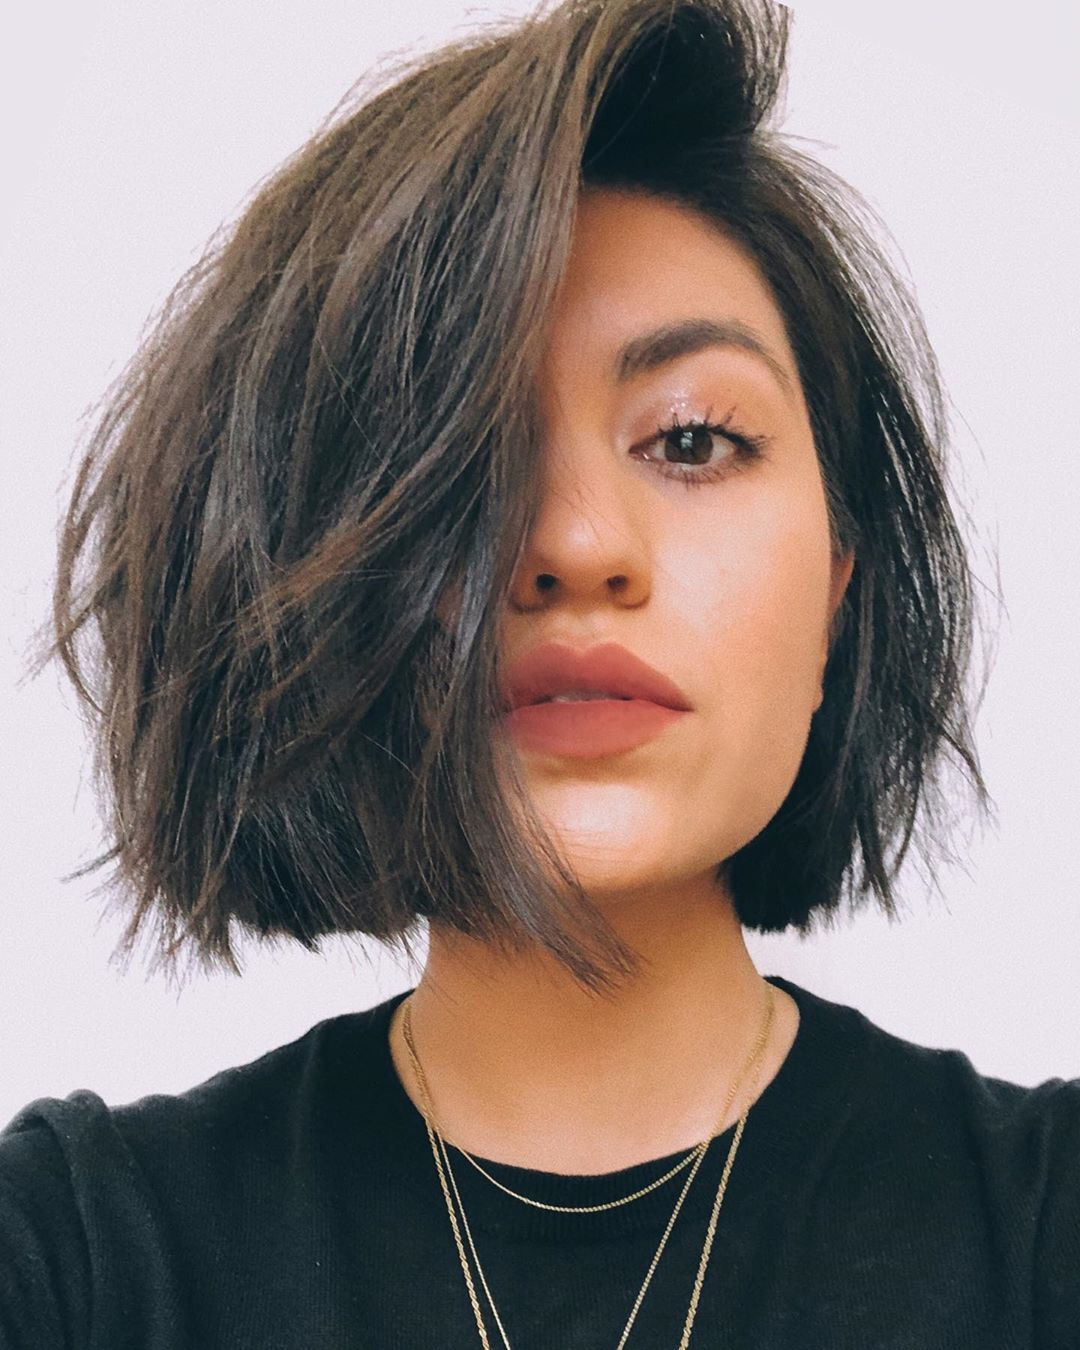 Chris Jones On Instagram This Haircut Though This Is A Perfect Example Short Hairstyles For Thick Hair Short Hair Styles For Round Faces Thick Hair Styles